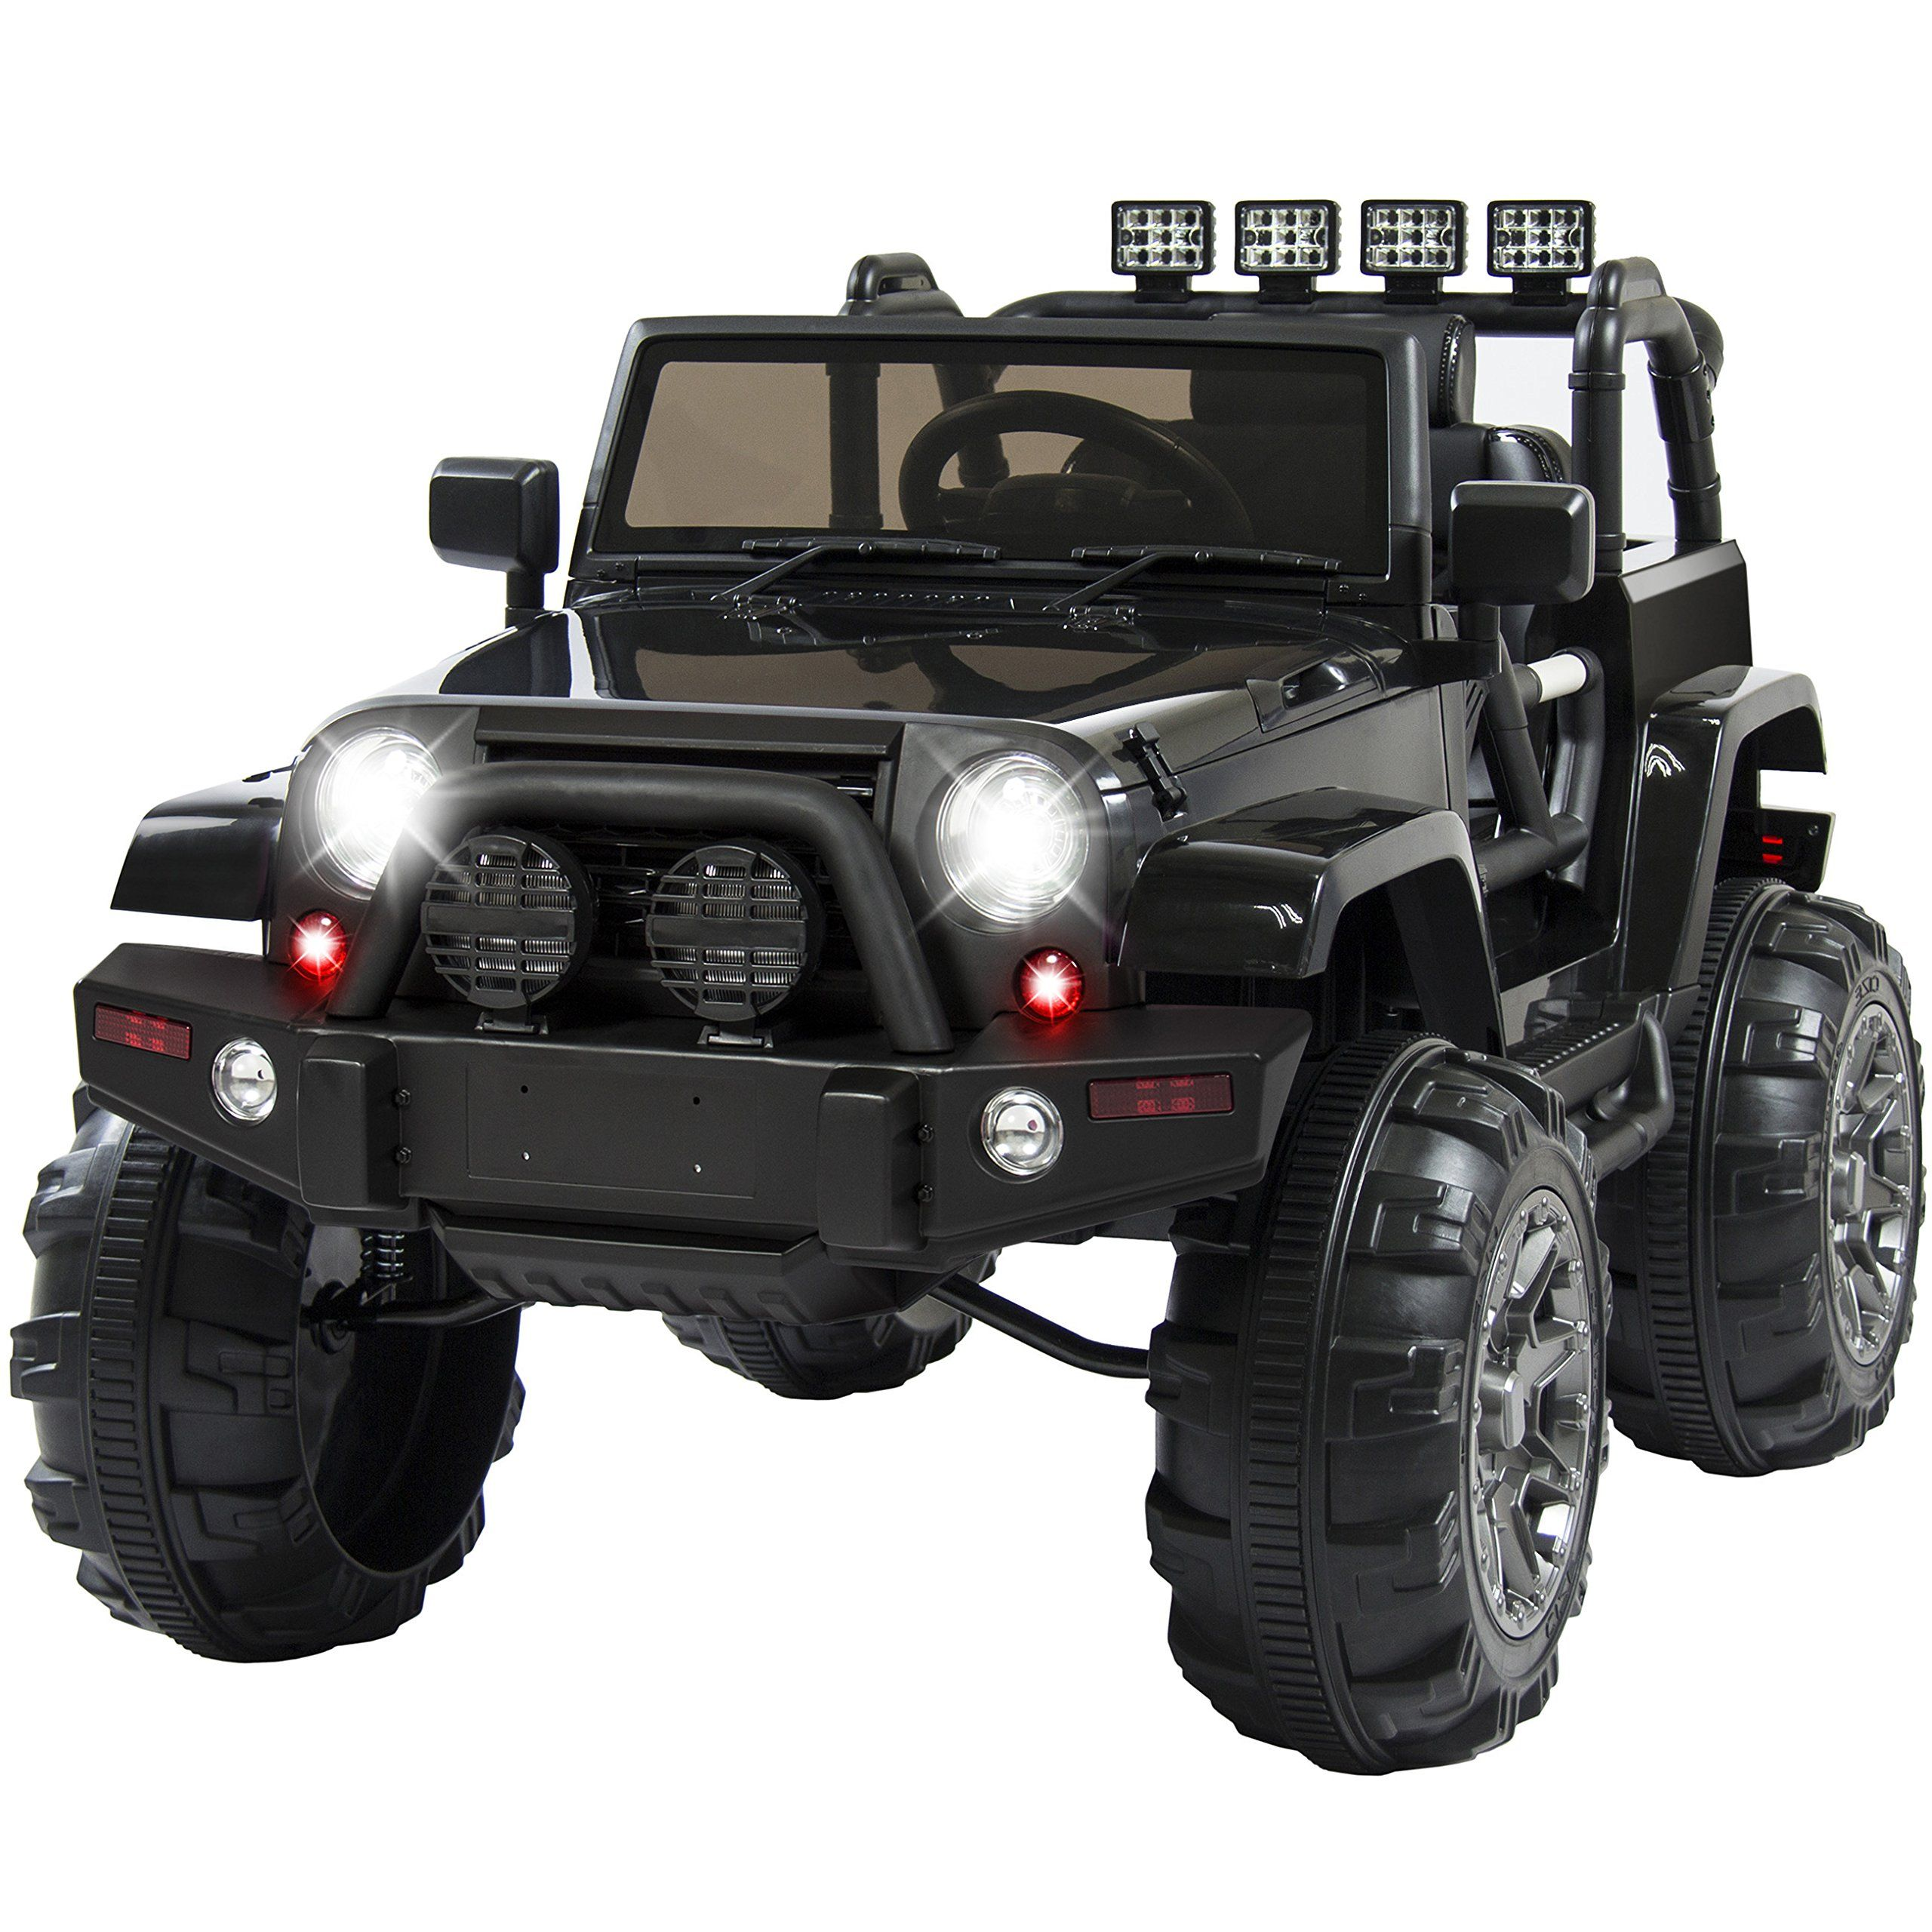 Best Choice Products 12v Ride On Car Truck W Remote Control 3 Speeds Spring Suspension Led Light Black Check Out Power Wheels Jeep Kids Ride On Power Wheels